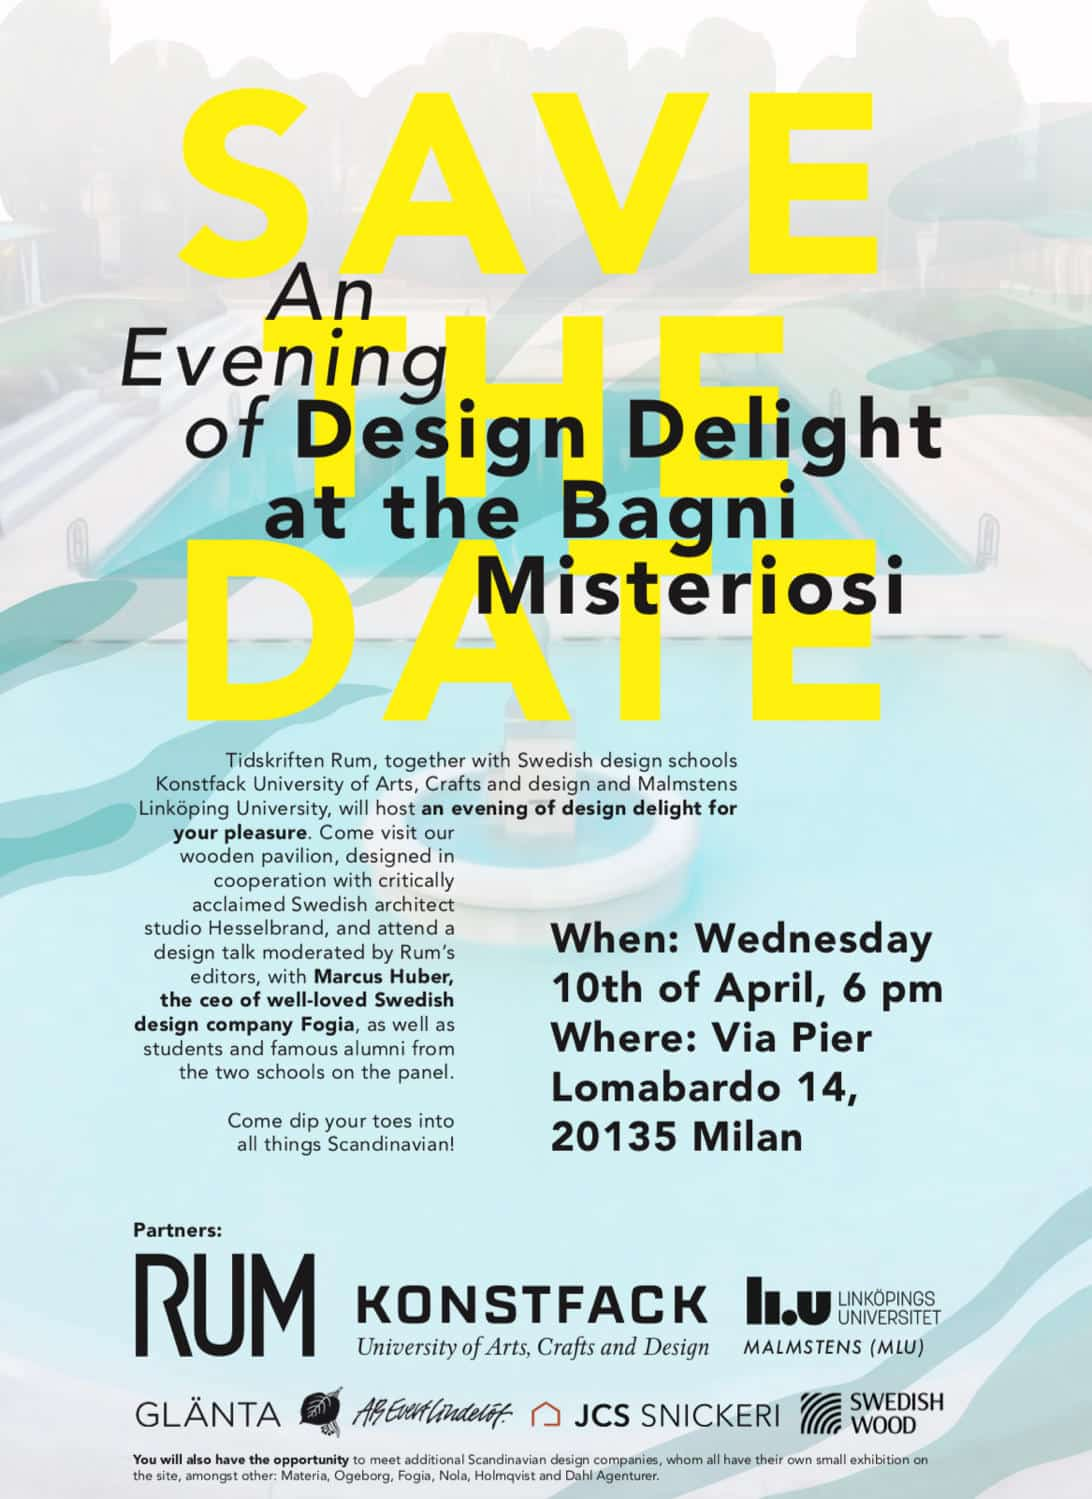 Design Delight @ The Bagni Misteriosi, Milan